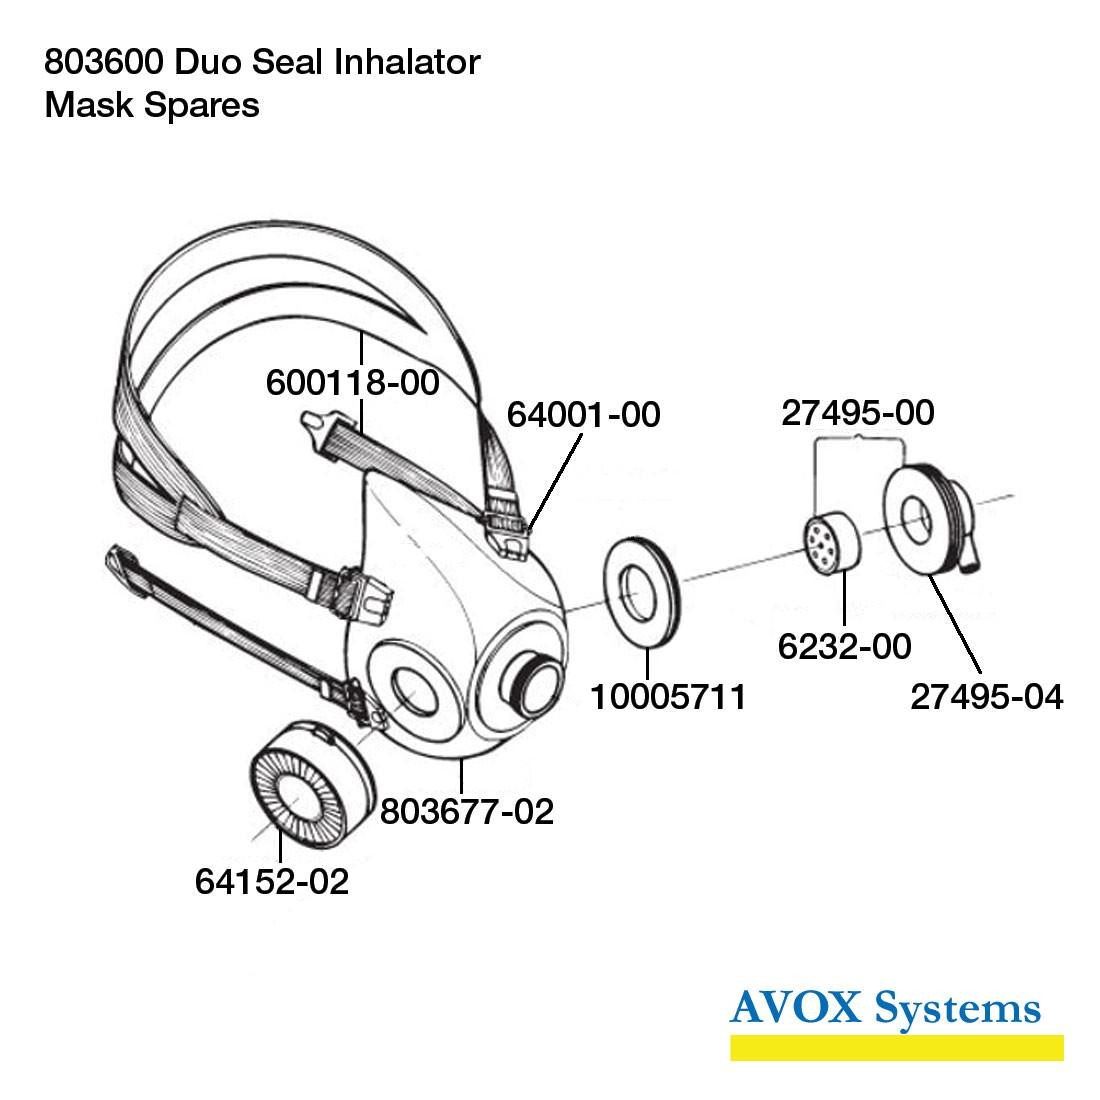 Avox Duo Seal Inhalator 803677-02 Face Seal with Strap Assembly - Medium - Mask Spares